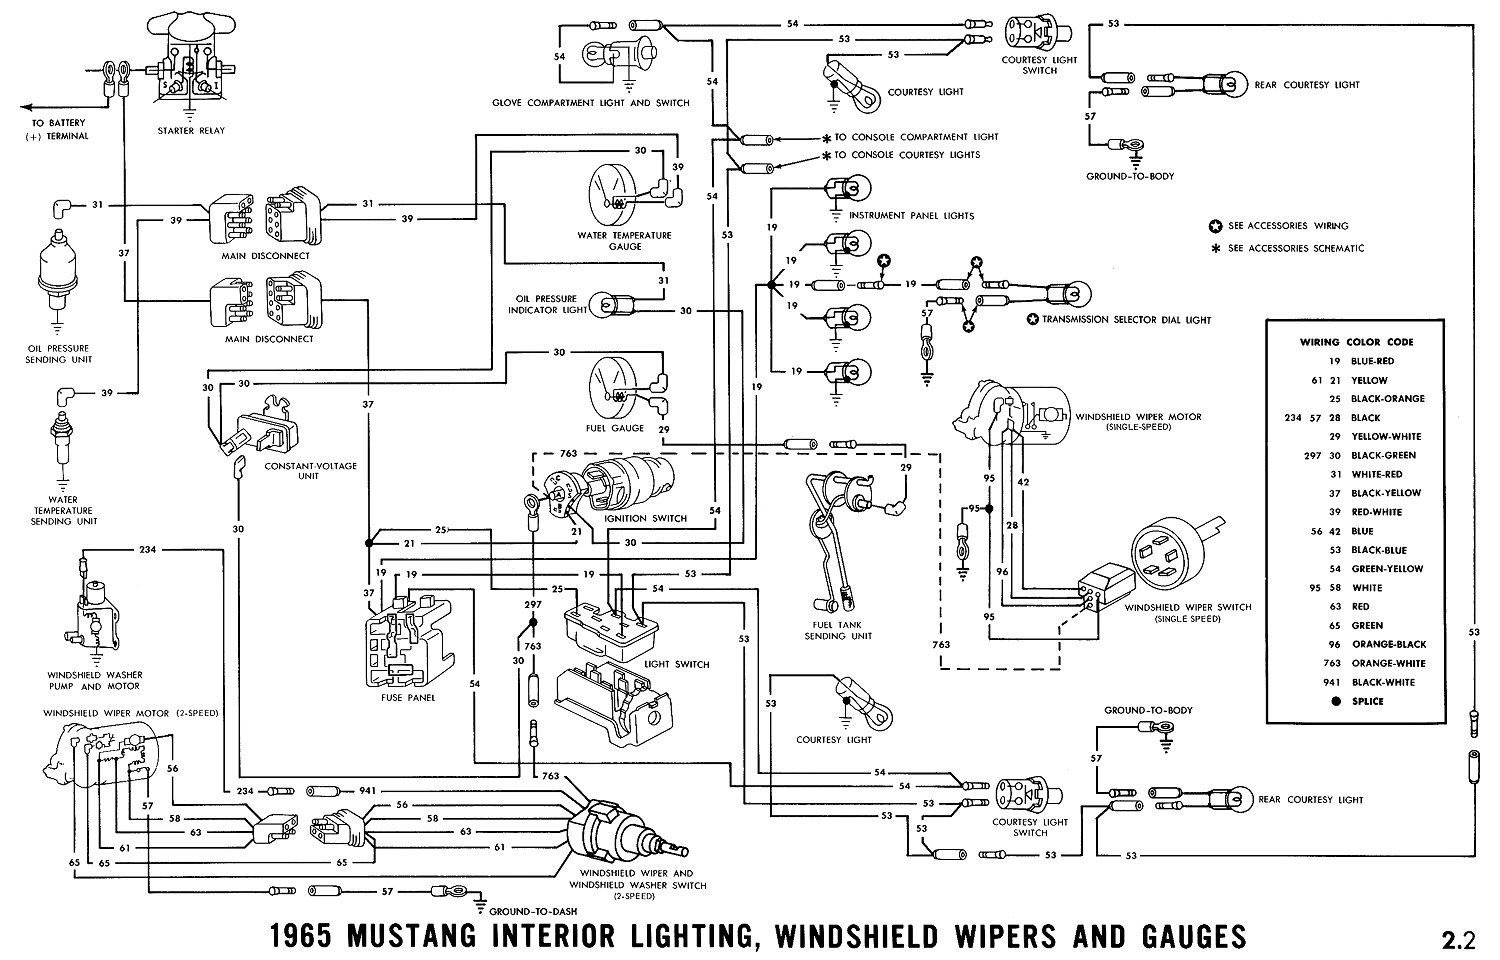 1965g 1965 mustang wiring diagrams average joe restoration 1966 mustang radio wiring diagram at bakdesigns.co